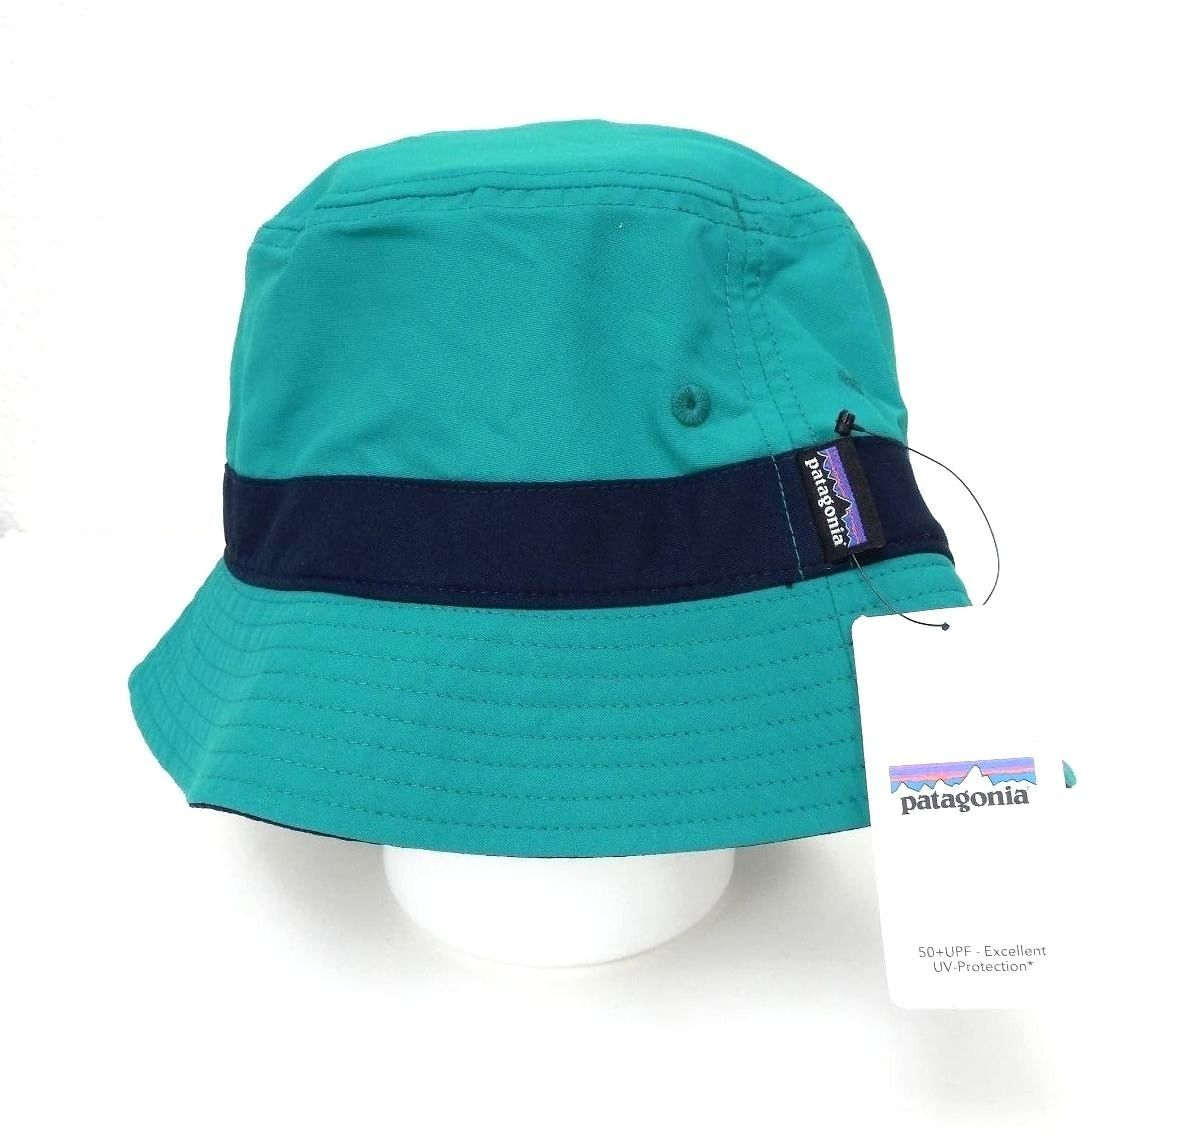 Patagonia Wavefarer Bucket Hat Emerald 29155 New ... 04bdbd37b0d